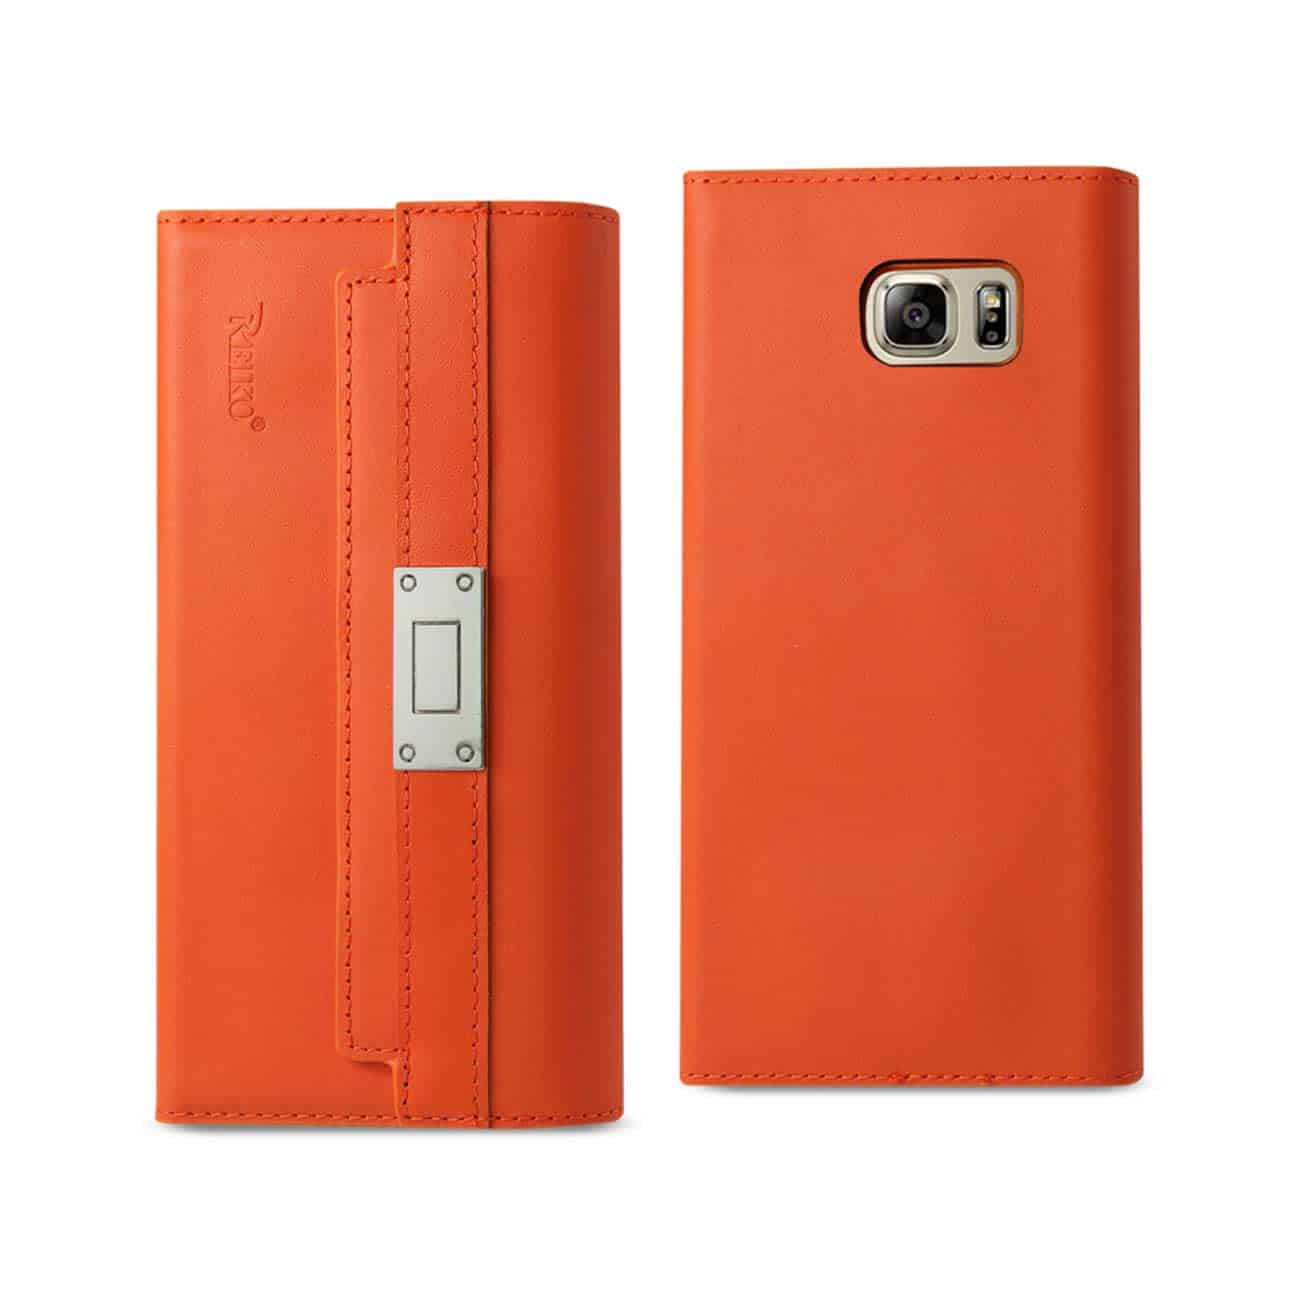 SAMSUNG GALAXY NOTE 5 GENUINE LEATHER RFID WALLET CASE AND METAL BUCKLE BELT IN TANGERINE